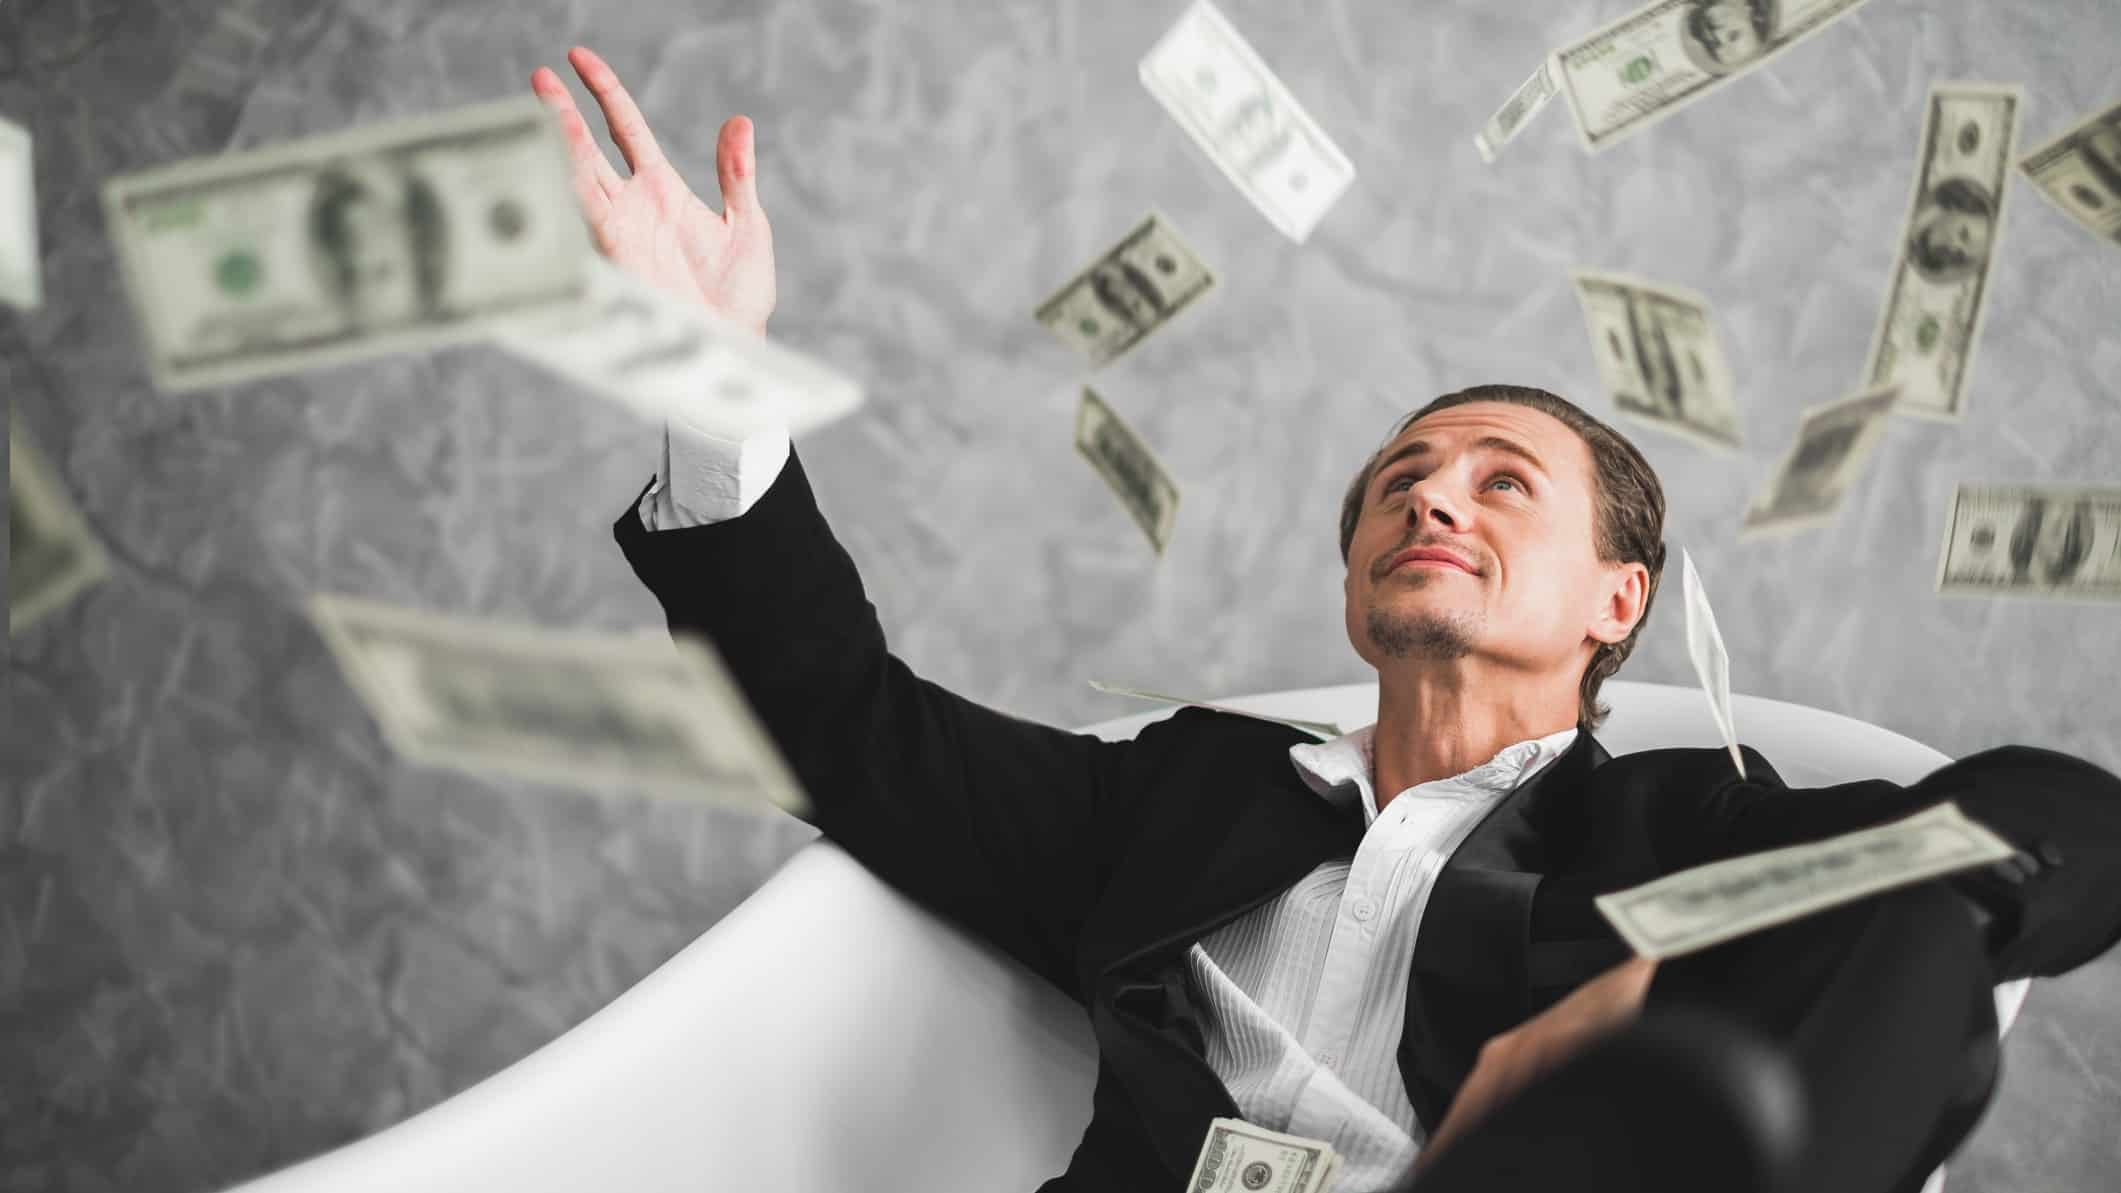 Millionaire and Wealthy man with money raining down, cheap stocks